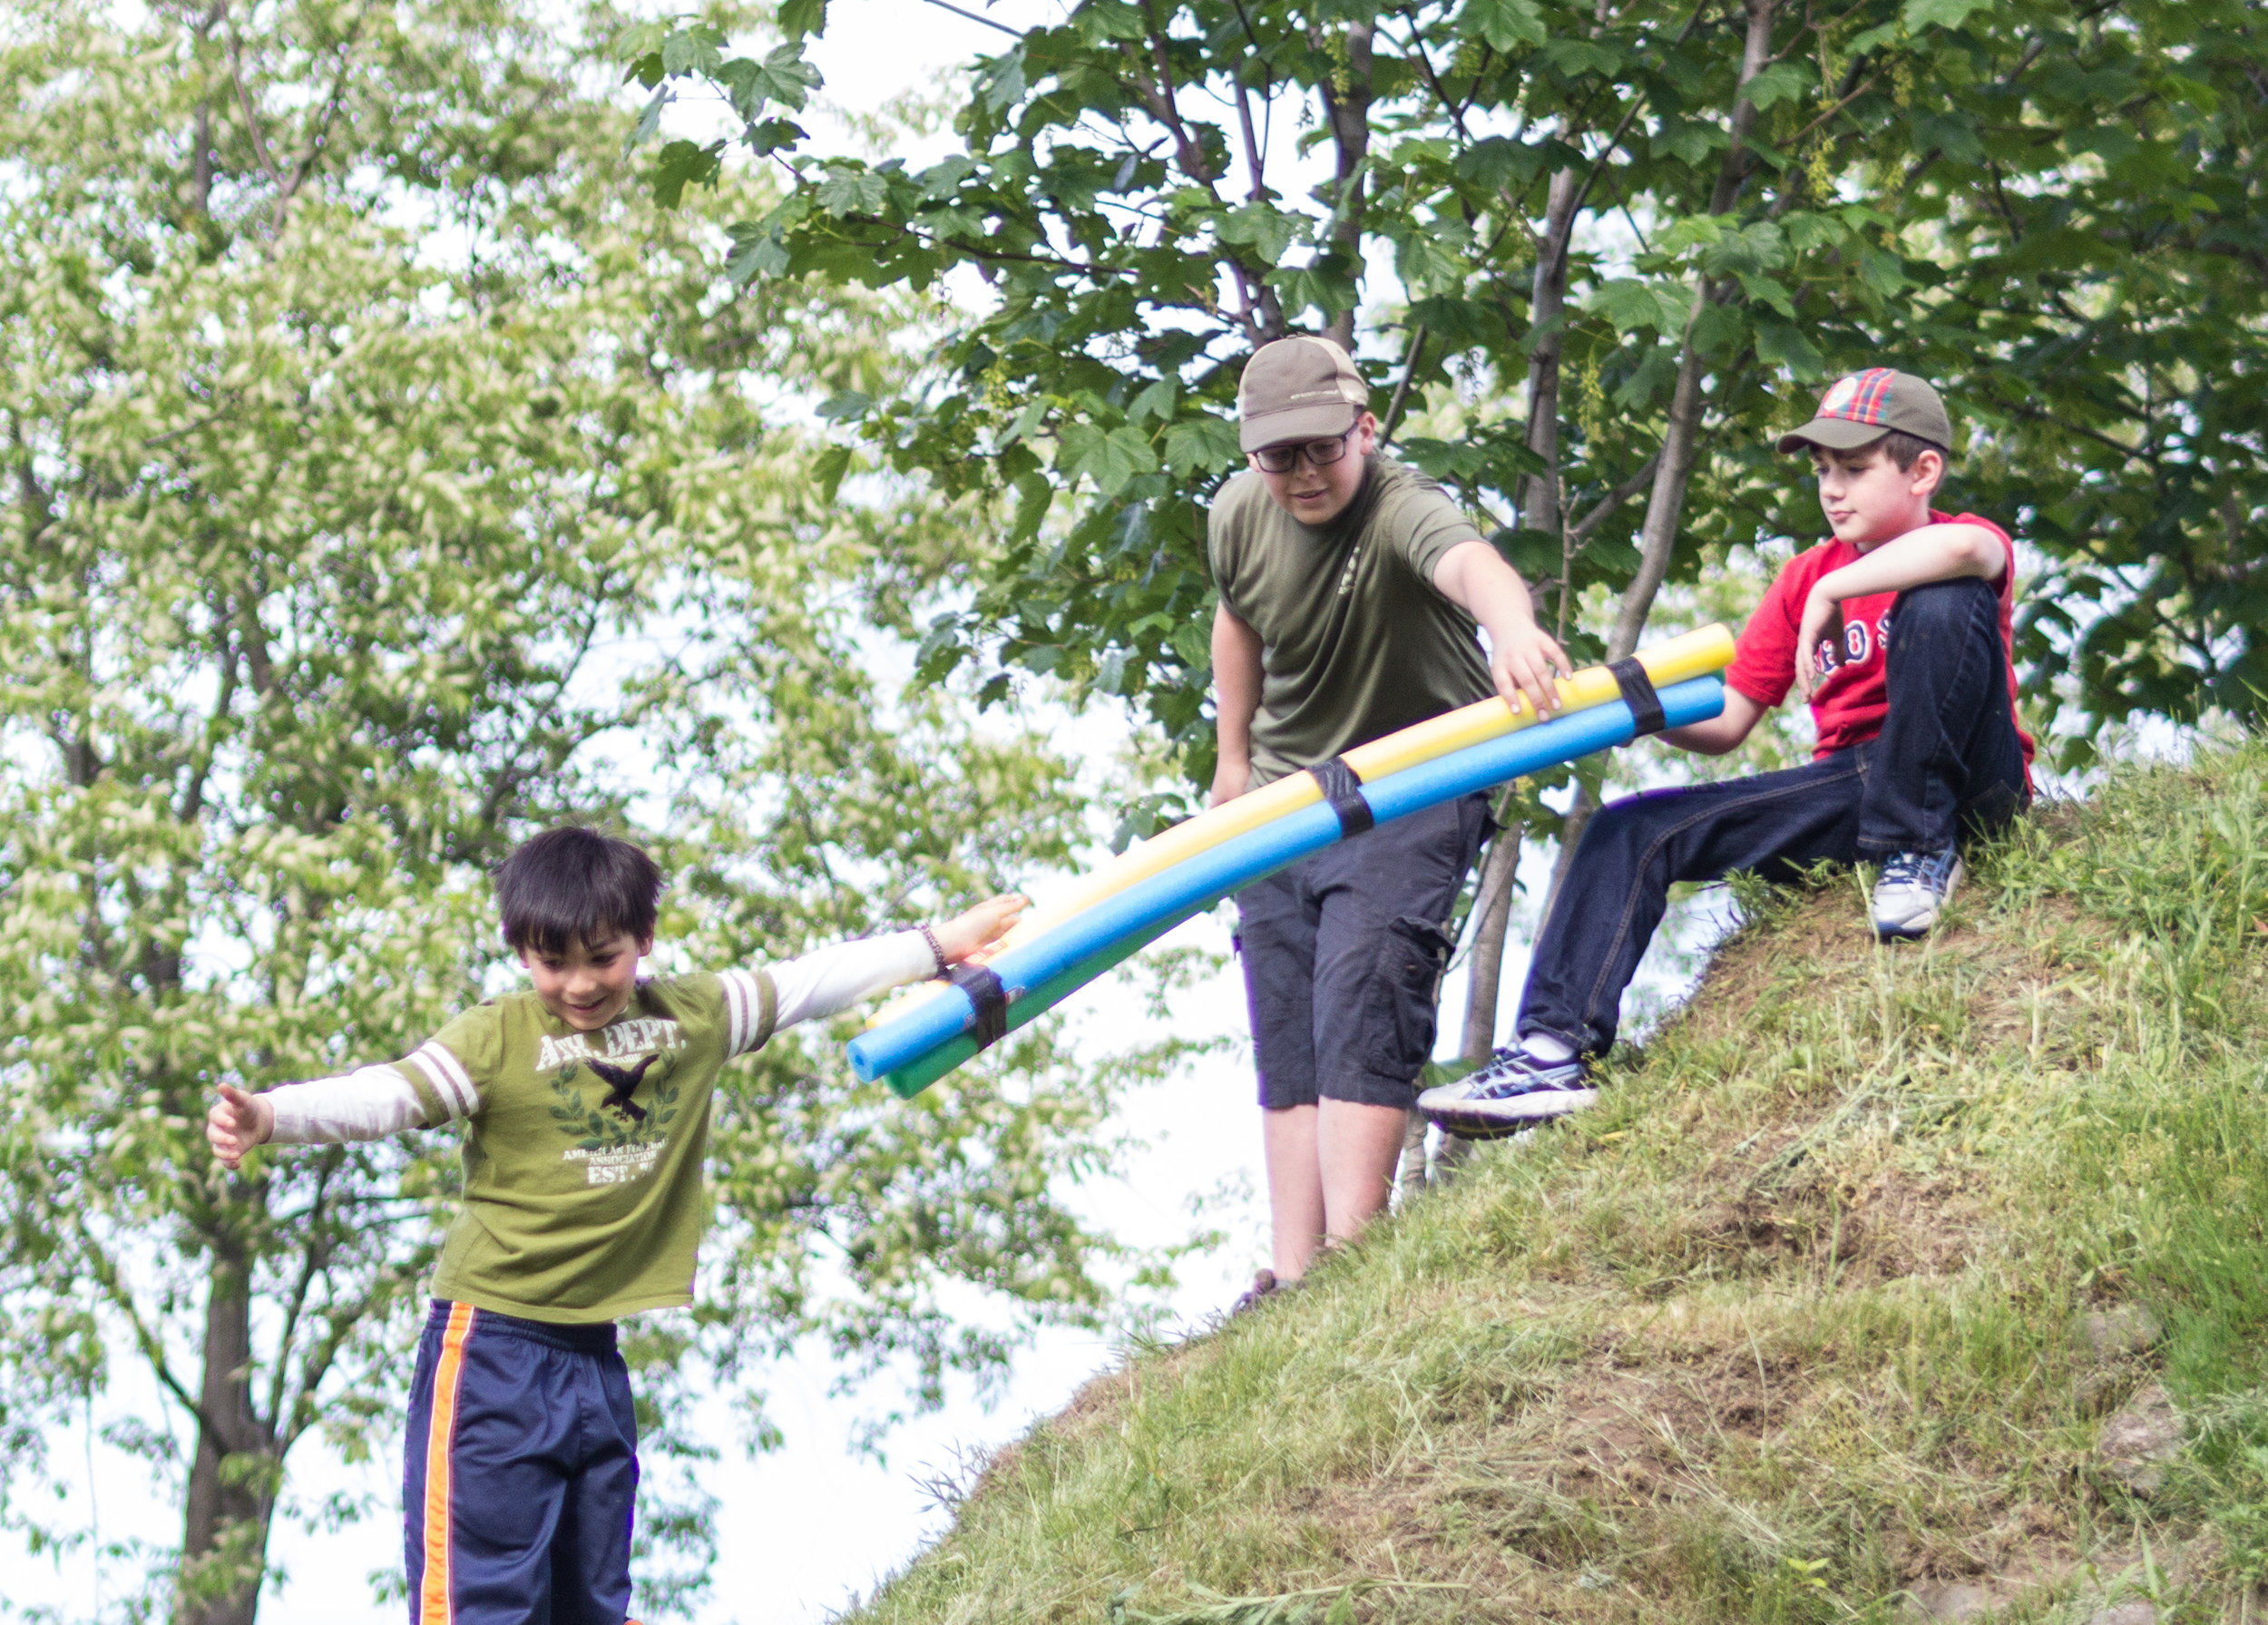 Cub Scouts Obstacle Course_12.jpg